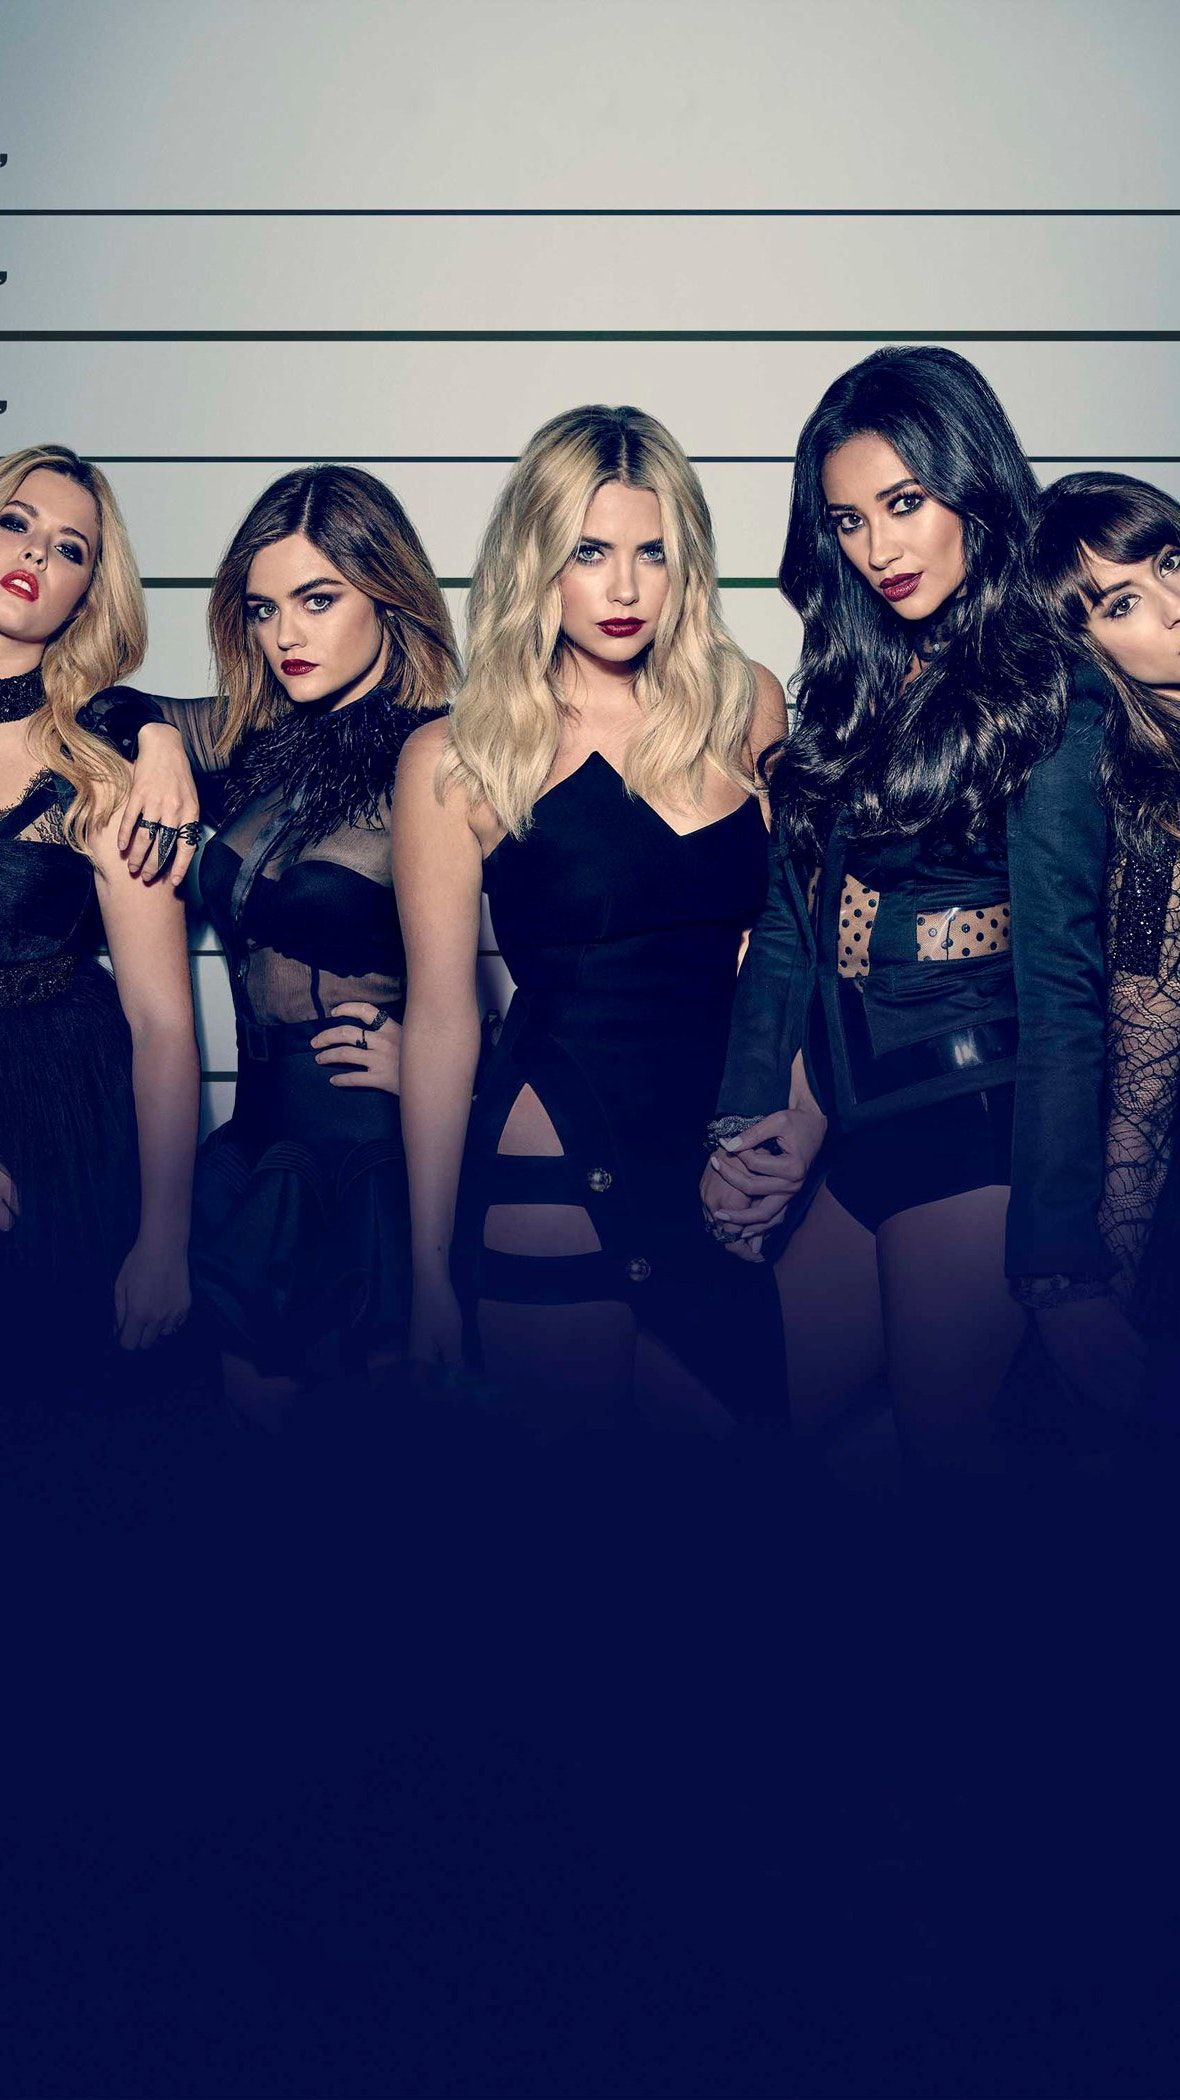 pretty little liars wallpaper  Pretty Little Liars Phone Wallpaper | Pinterest | Movie wallpapers ...